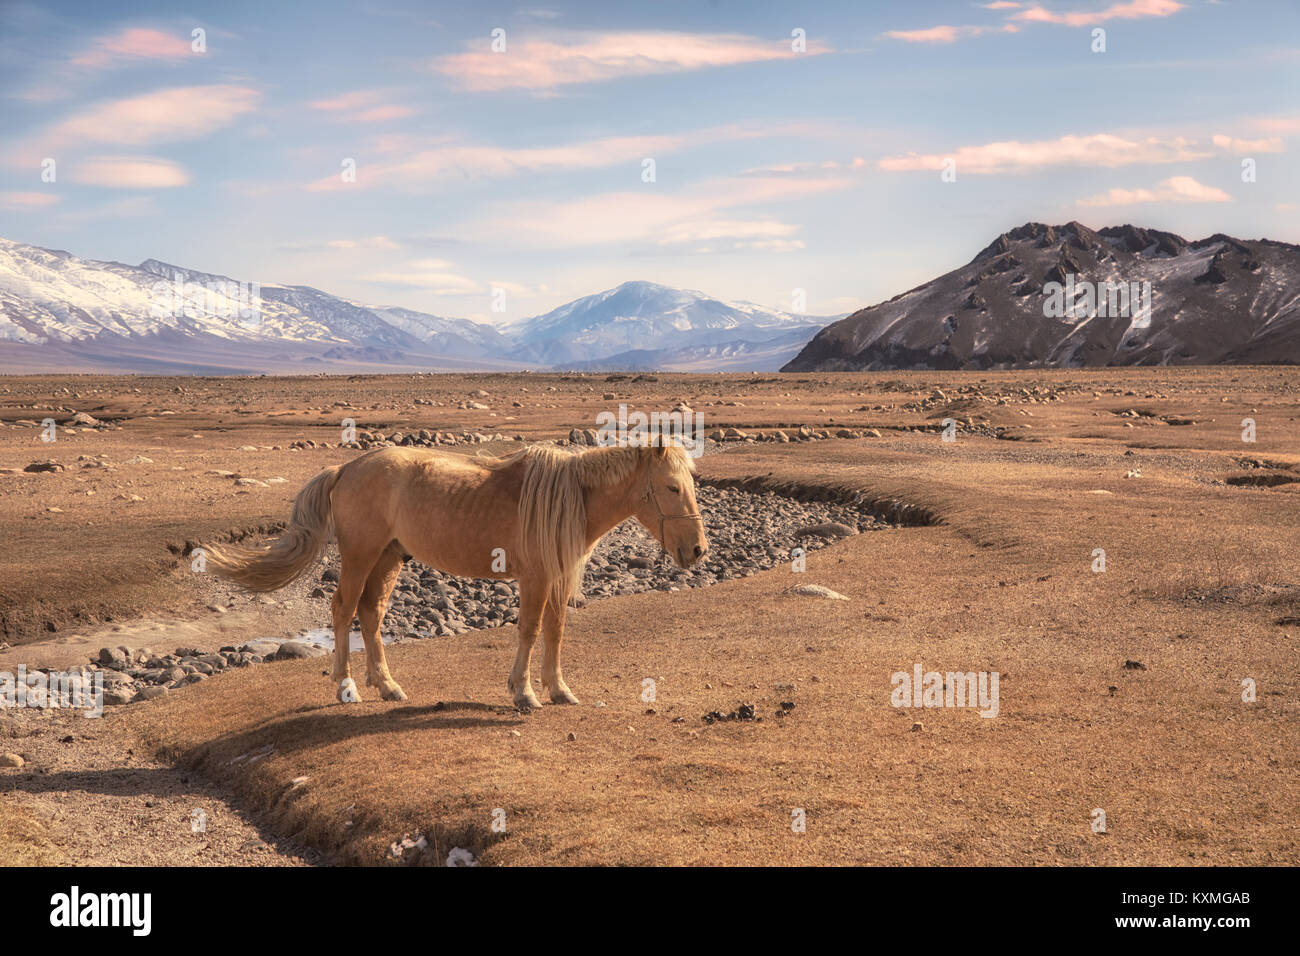 Mongolian blonde horse Mongolia steppes grasslands snowy mountains winter - Stock Image